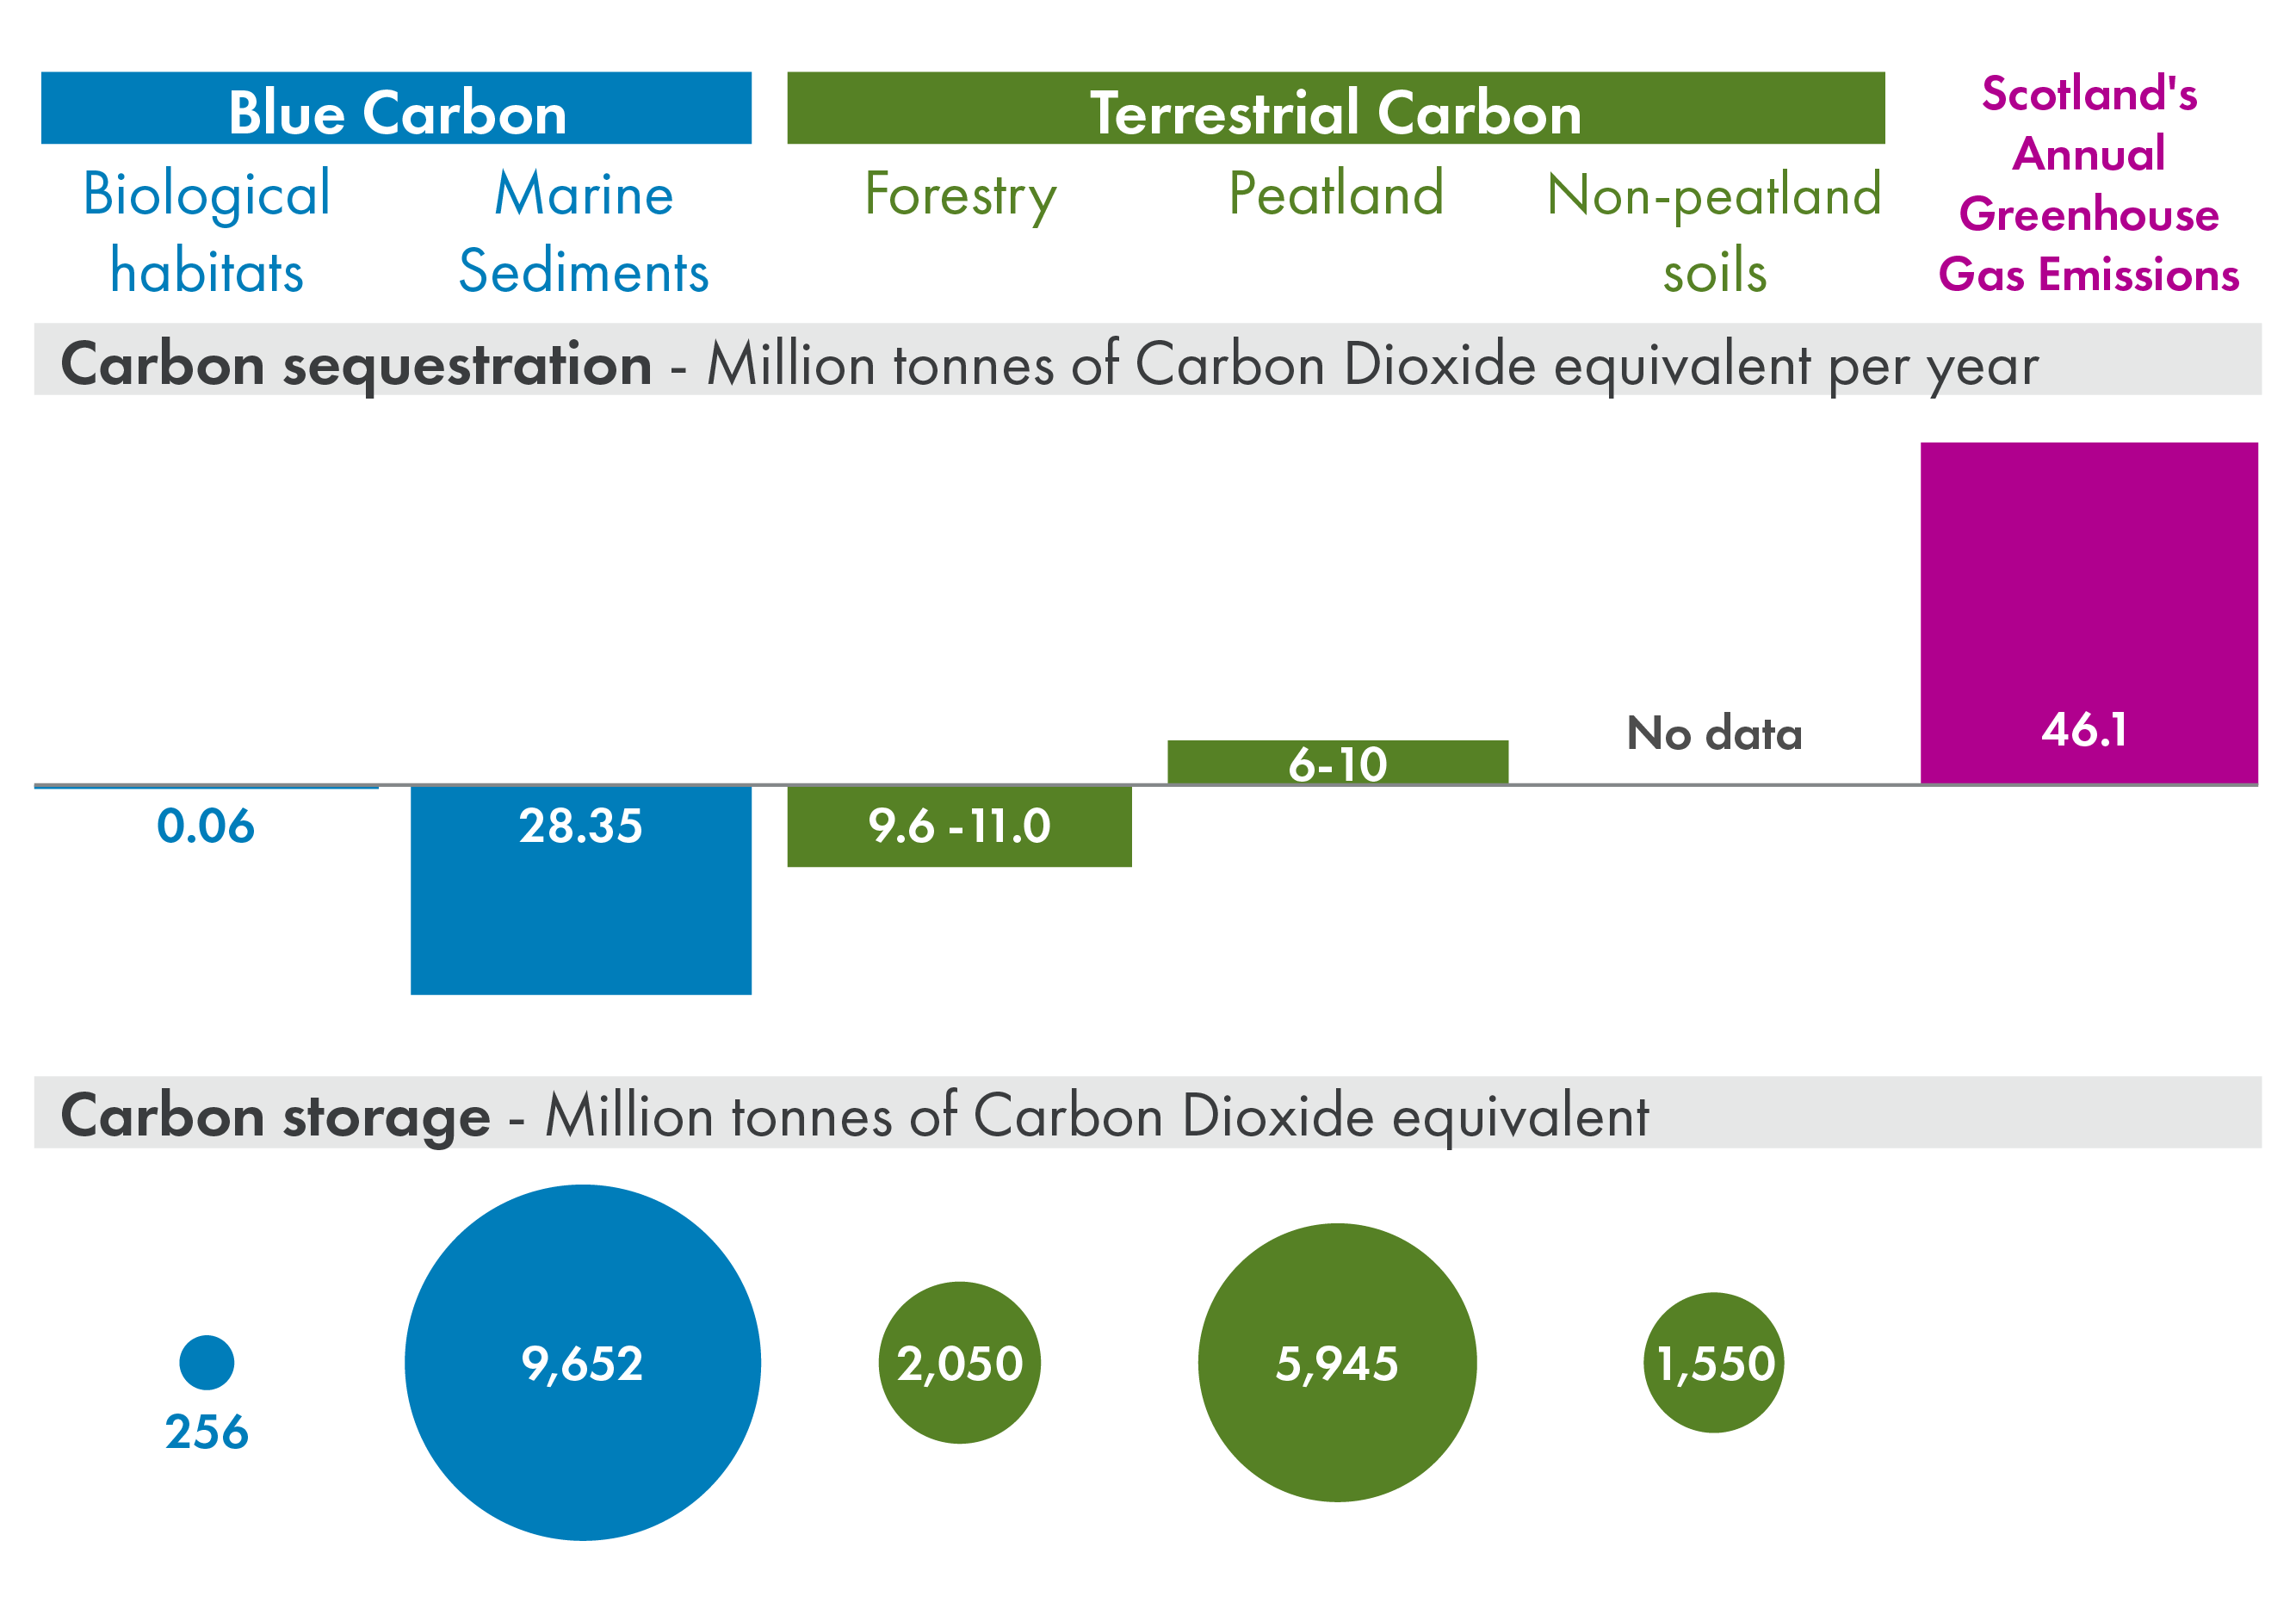 Infographic showing the carbon stored and annually sequestered (in megatonnes of carbon dioxide equivalent per year) in Scotland's blue carbon, split into biological habitats and marine sediments, and Scotland's terrestrial carbon, split into forestry, peatland and non-peatland soils. This is shown alongside Scotland's annual greenhouse gas emissions. Scotland's blue carbon environments store 9,636 megatonnes of carbon dioxide equivalent, which exceeds the carbon stored in Scotland's land-based ecosystems megatonnes of carbon dioxide